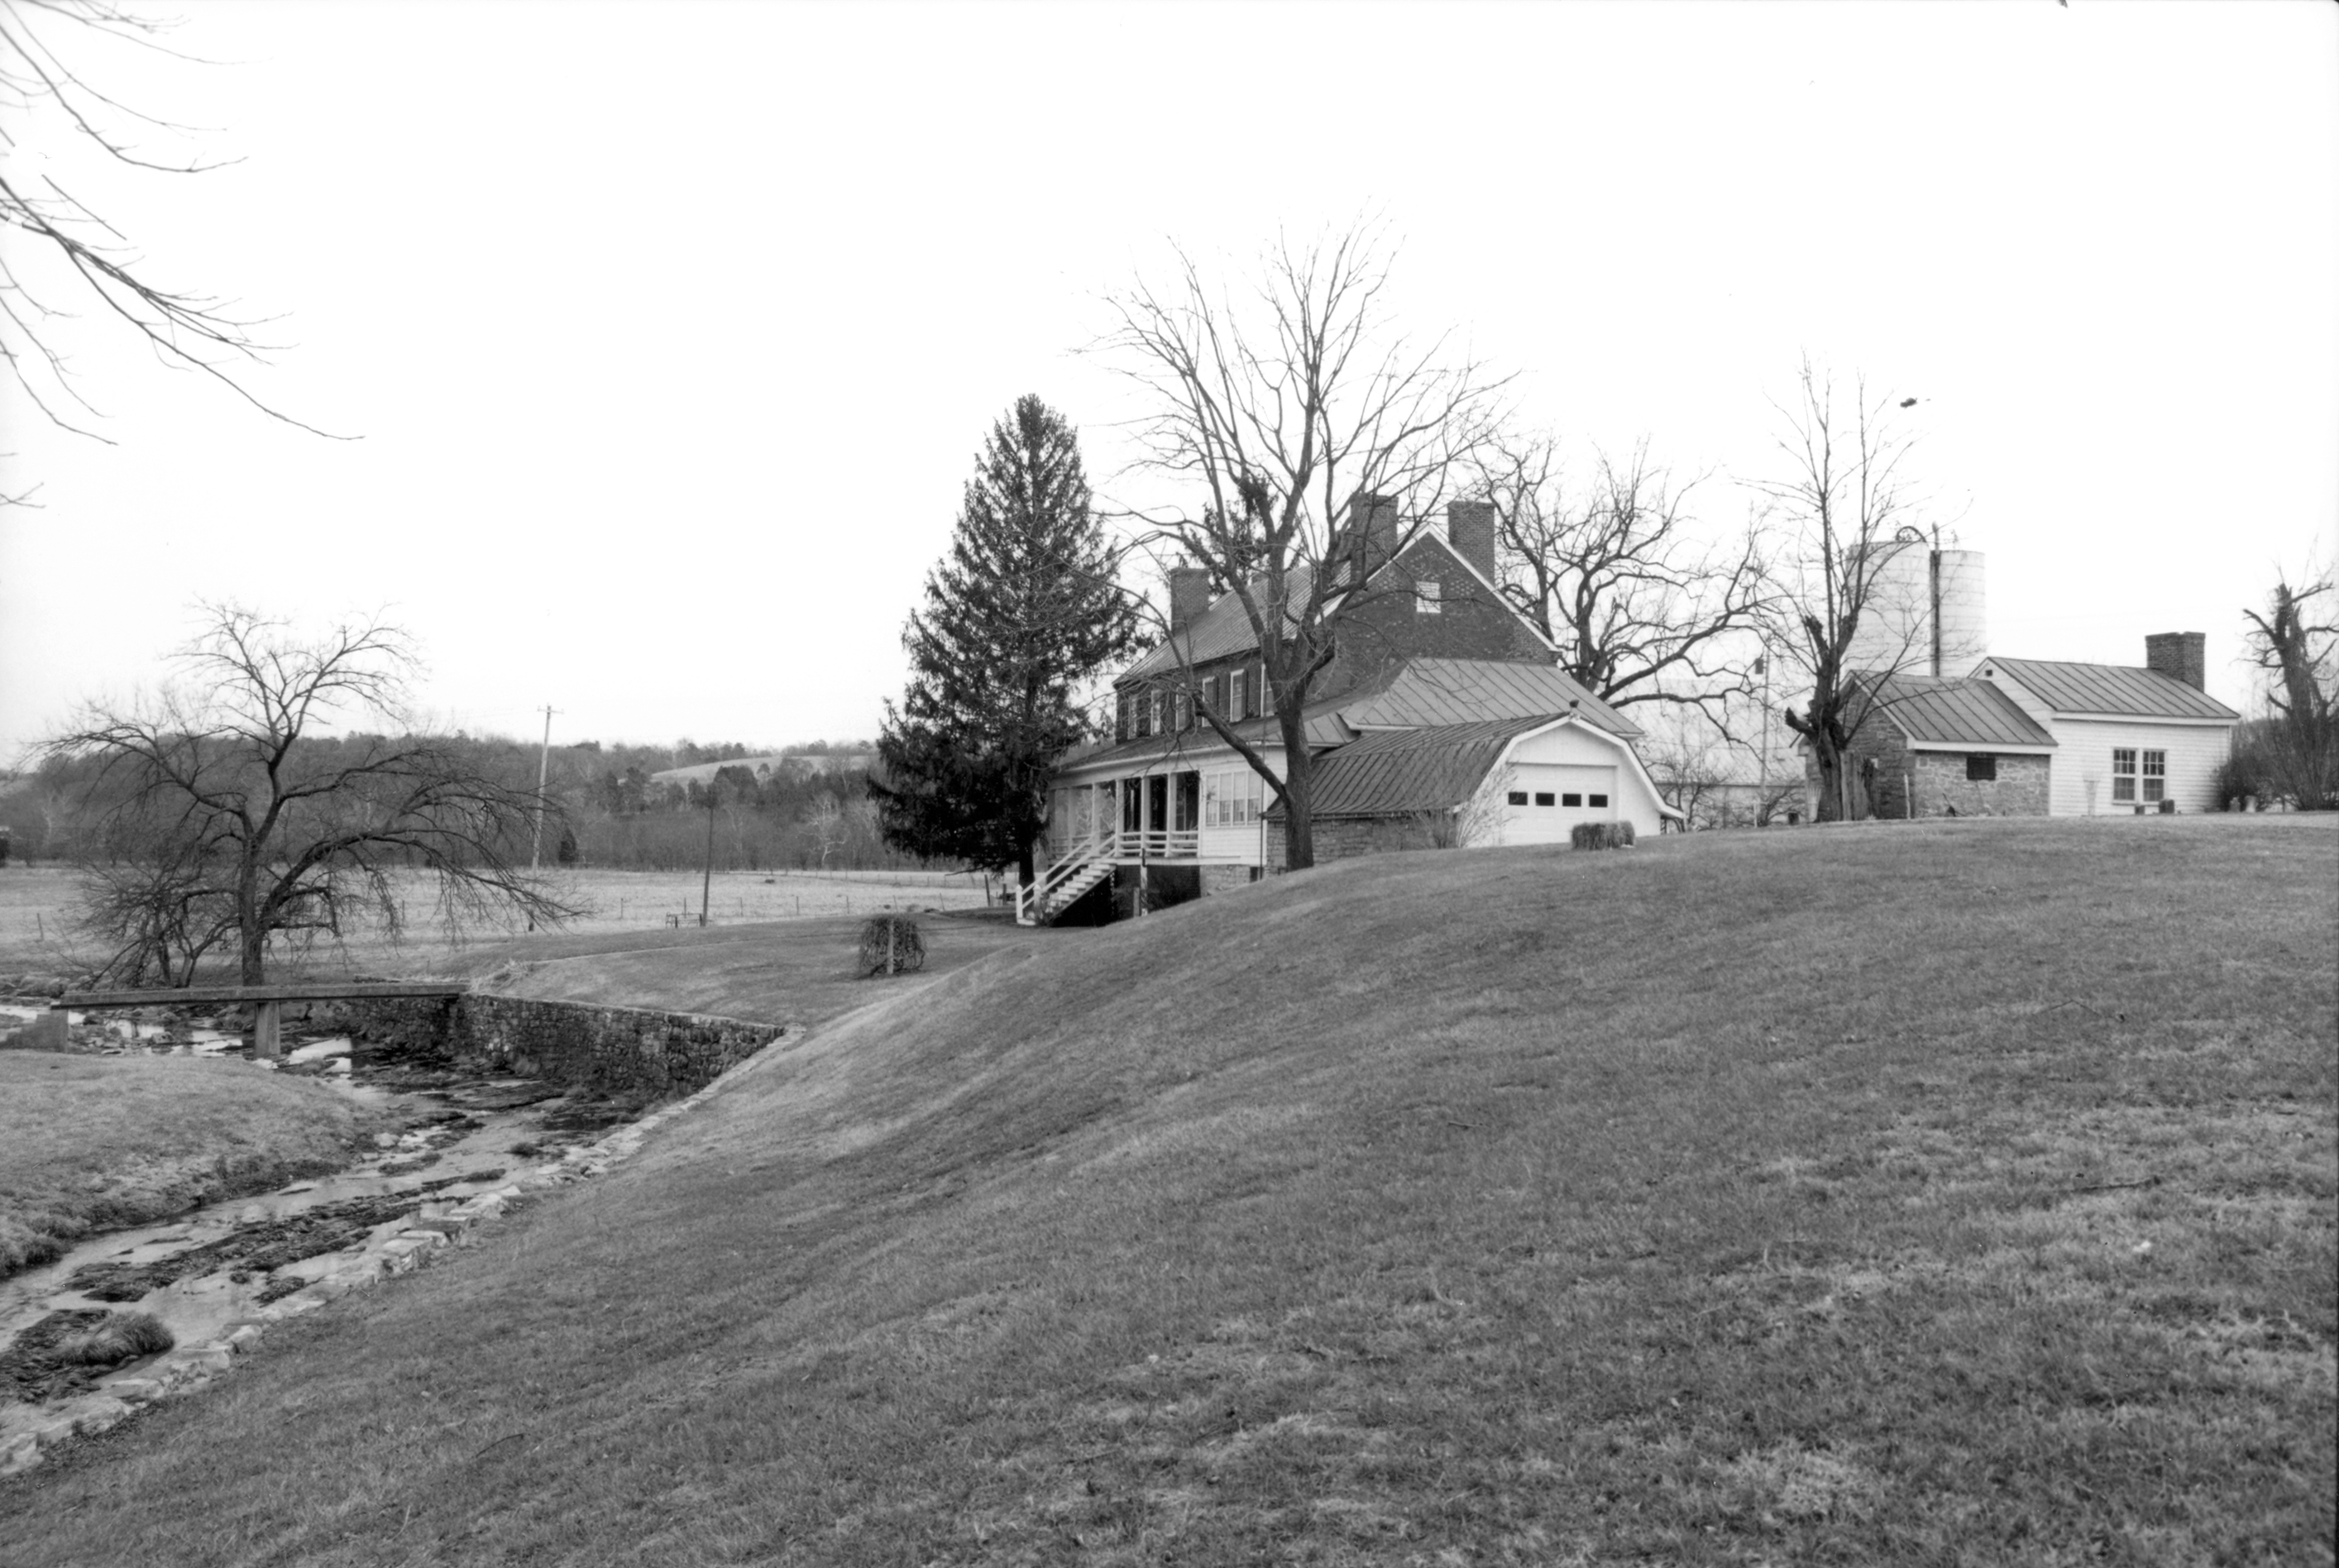 Wall Brook Farm